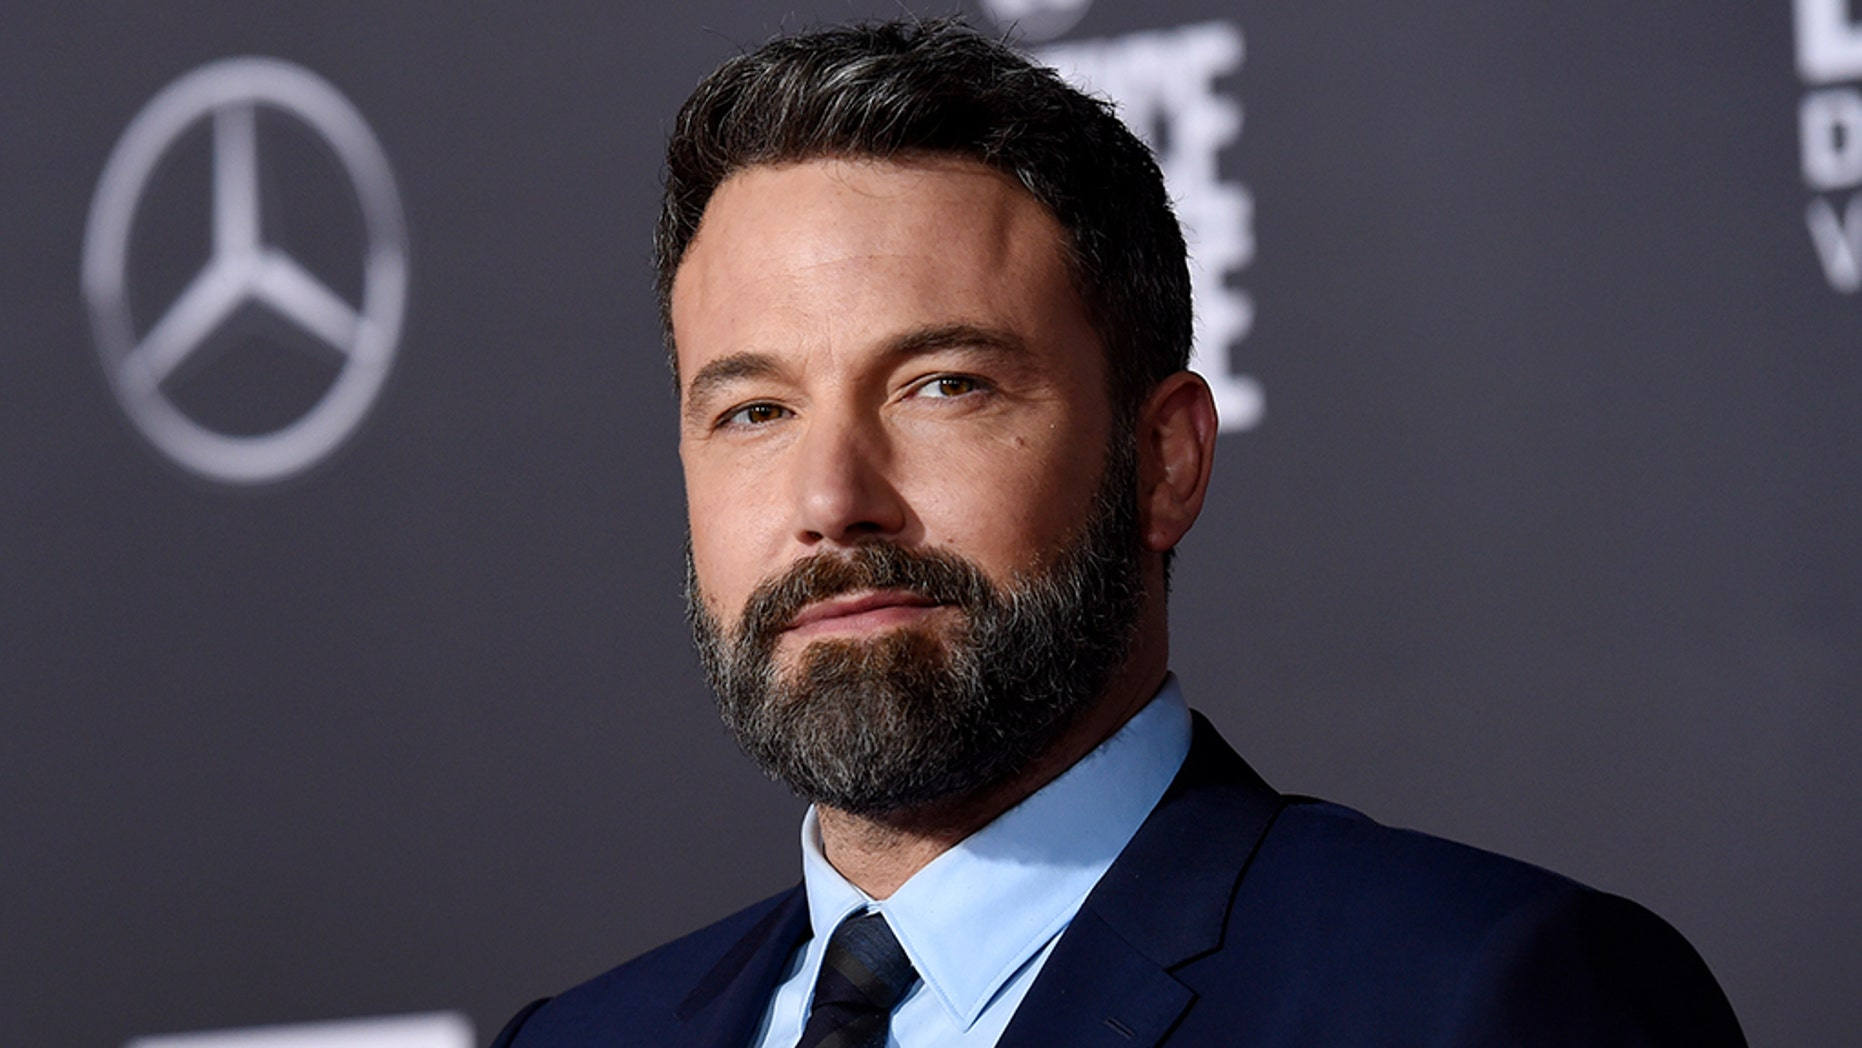 Ben Affleck defended his big tattoo behind him, saying that he loves